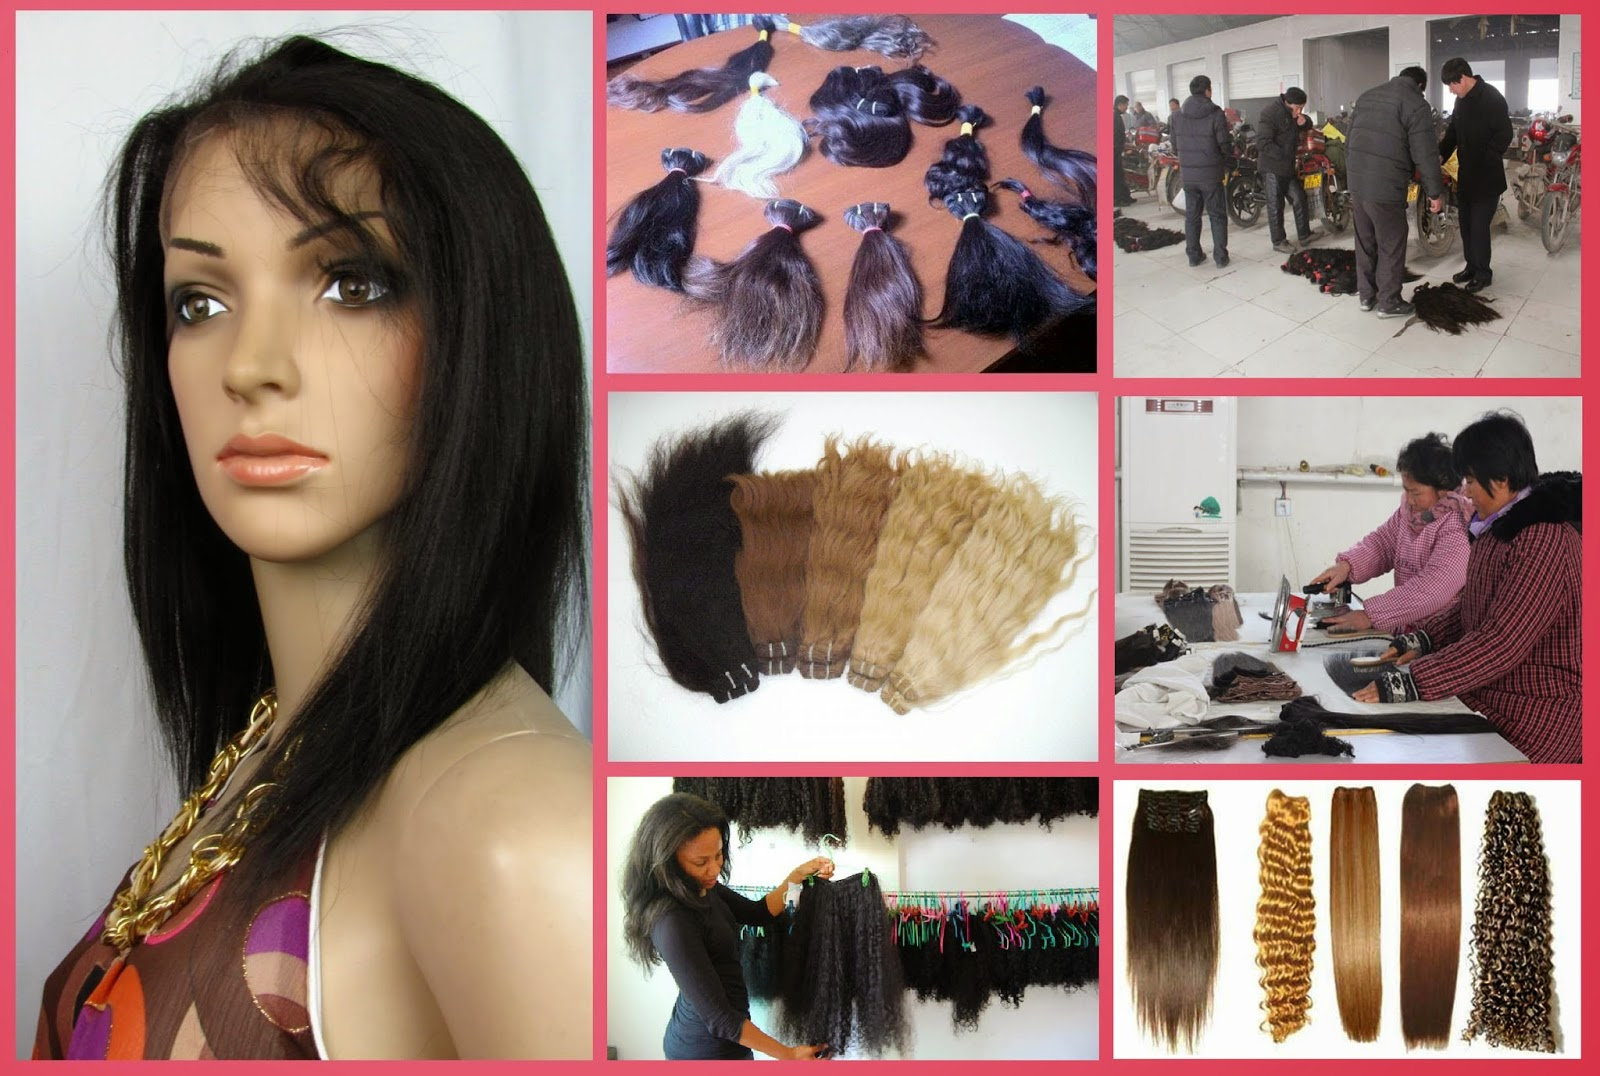 Human Hair Business